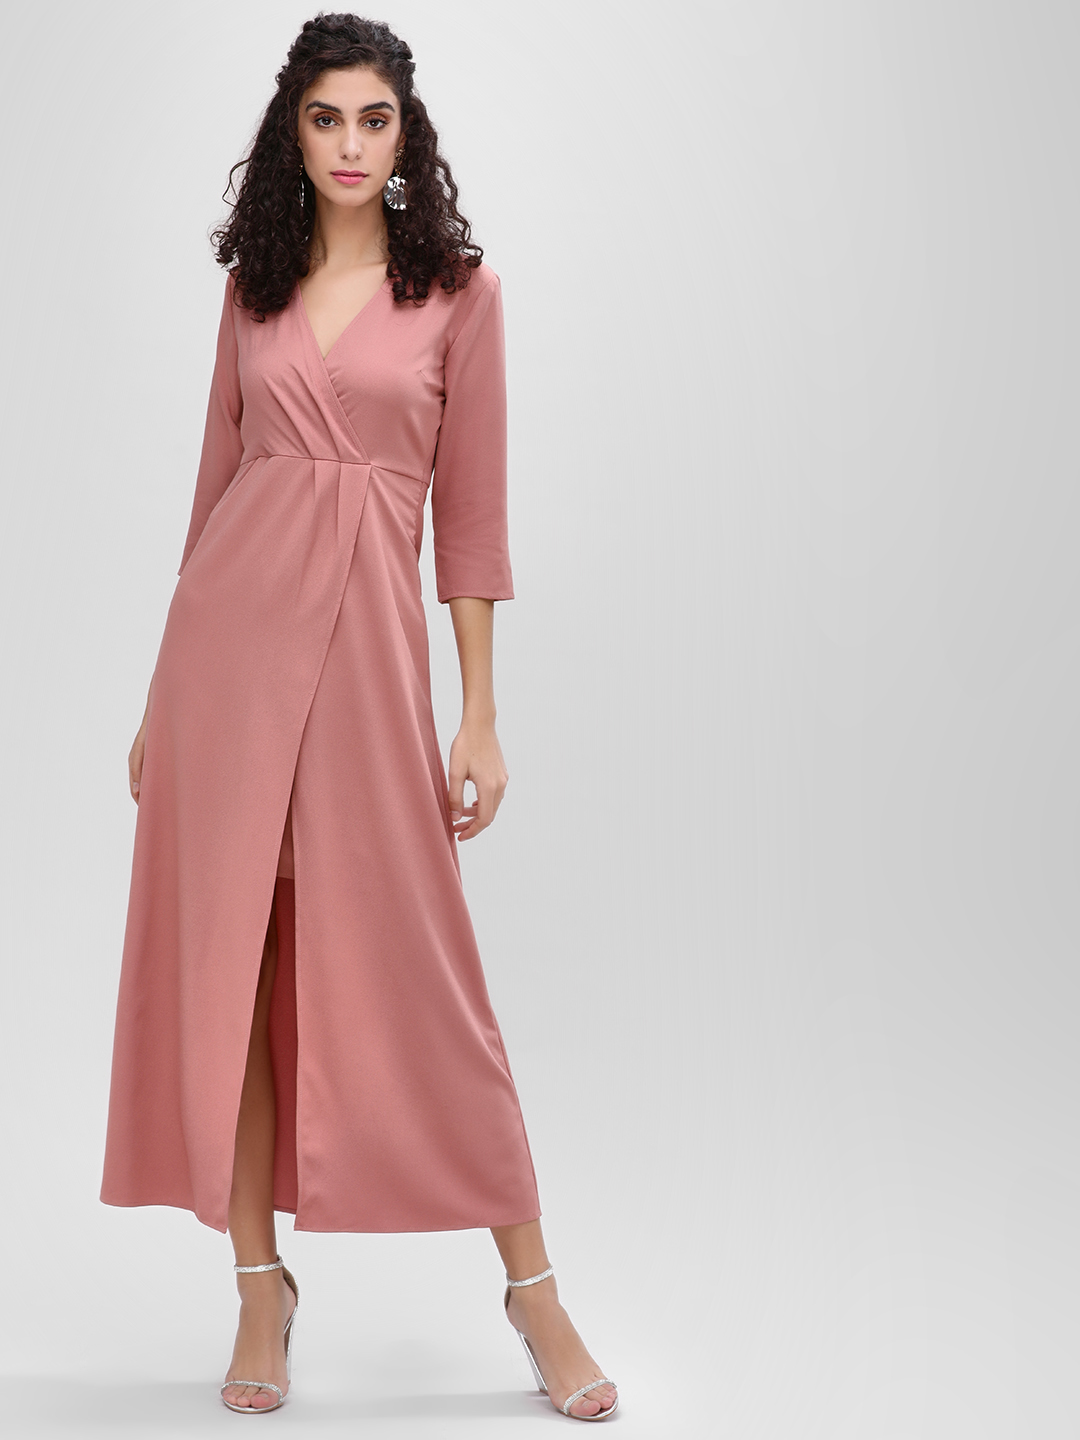 Femella Dusty Pink V Neck Overlay Maxi Dress 1